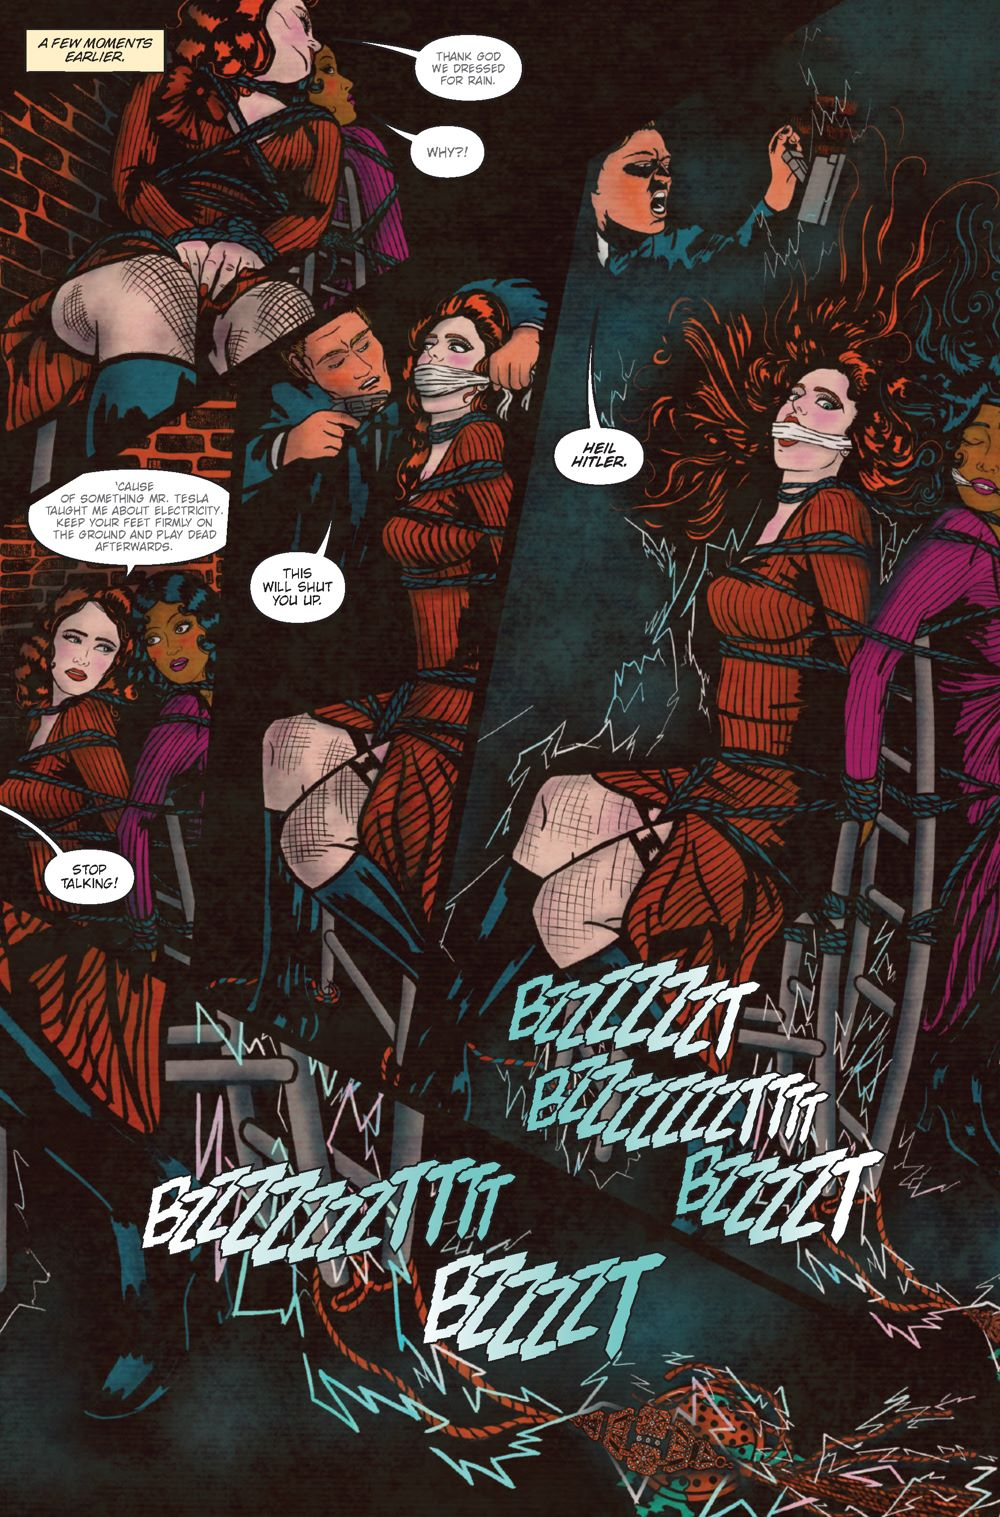 Pages-from-Binder3_Page_1 ComicList Previews: MINKY WOODCOCK THE GIRL WHO ELECTRIFIED TESLA #4